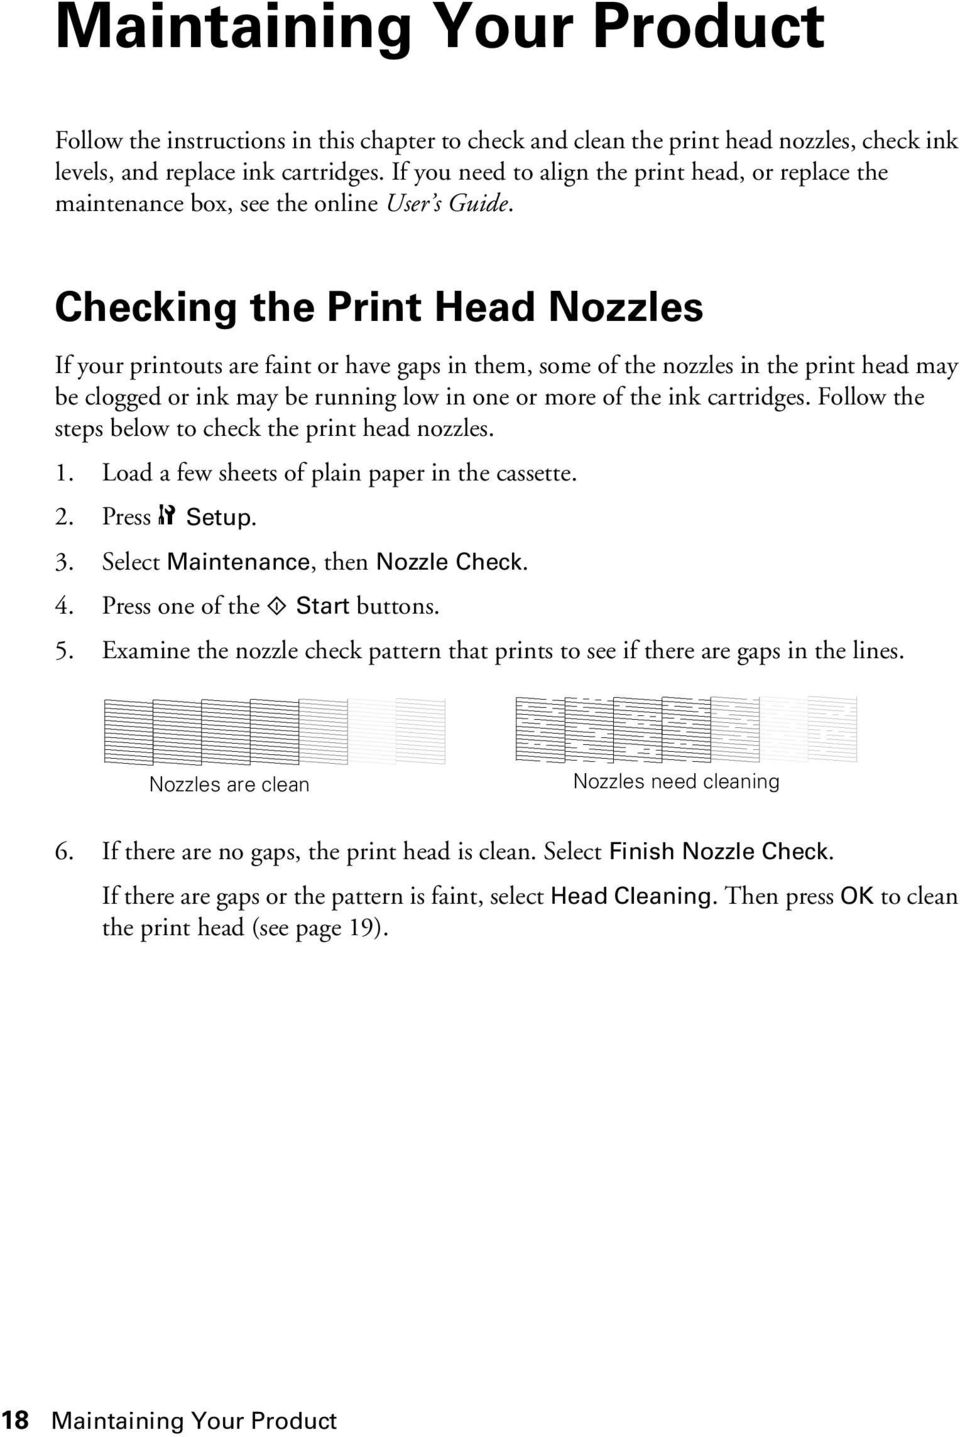 Checking the Print Head Nozzles If your printouts are faint or have gaps in them, some of the nozzles in the print head may be clogged or ink may be running low in one or more of the ink cartridges.